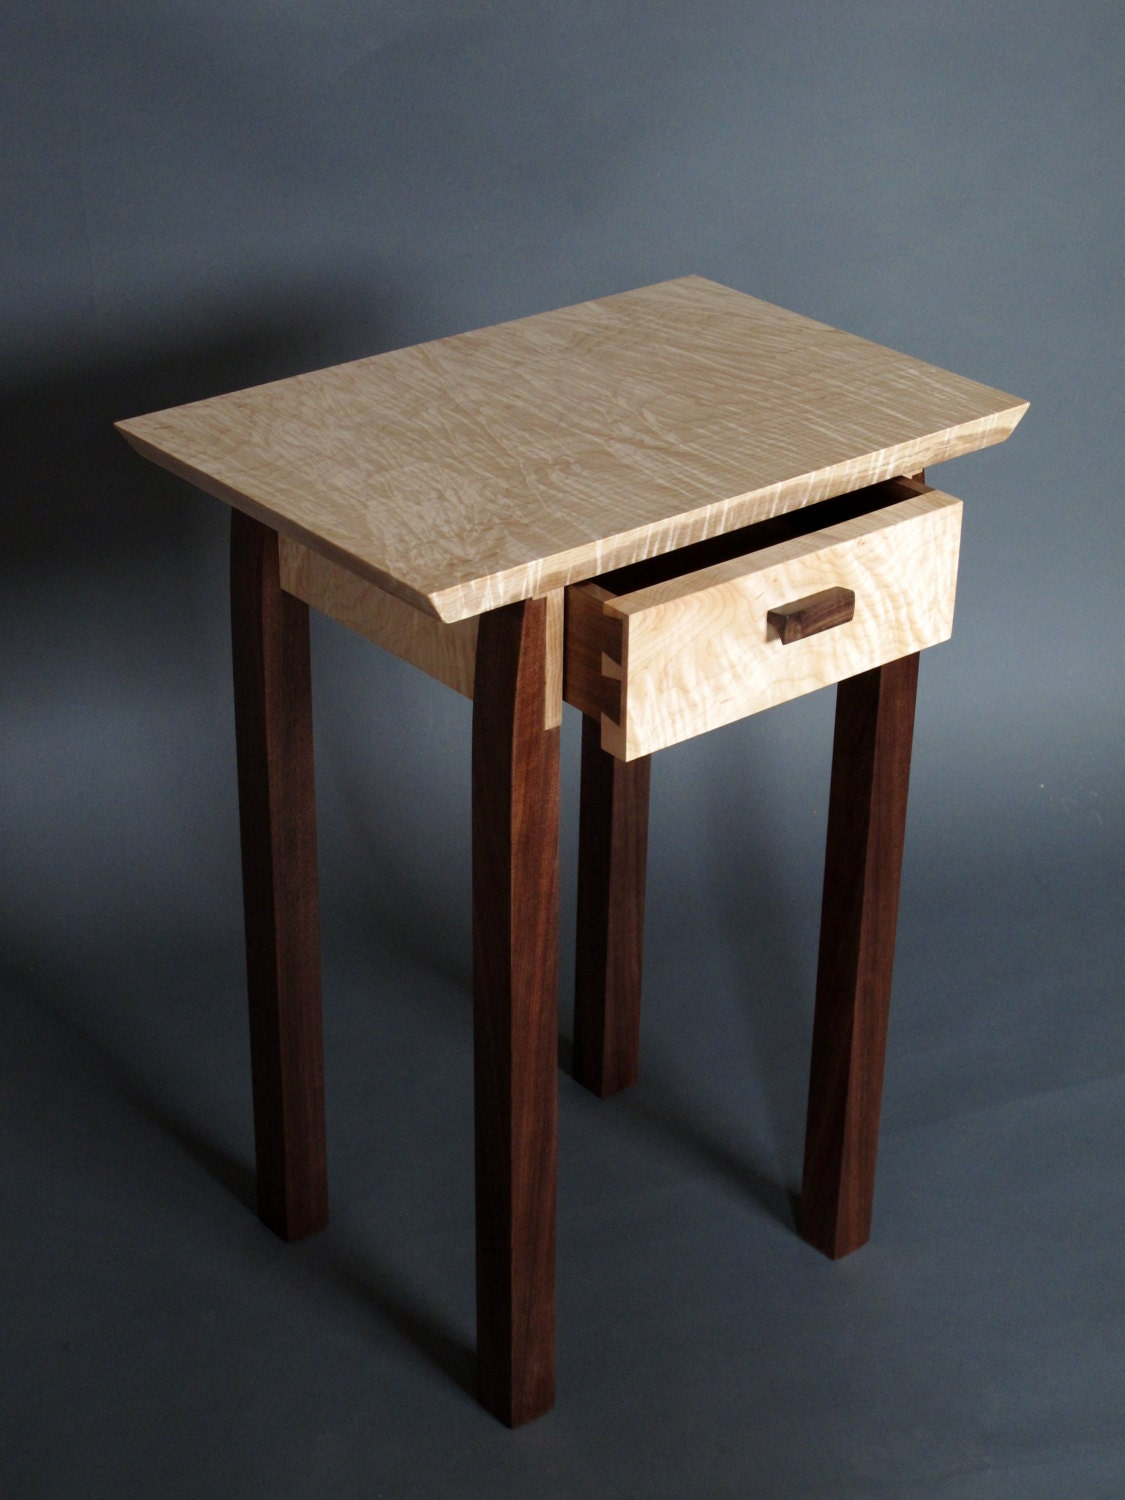 Bed side table with drawer narrow wooden table contemporary for Small designer tables